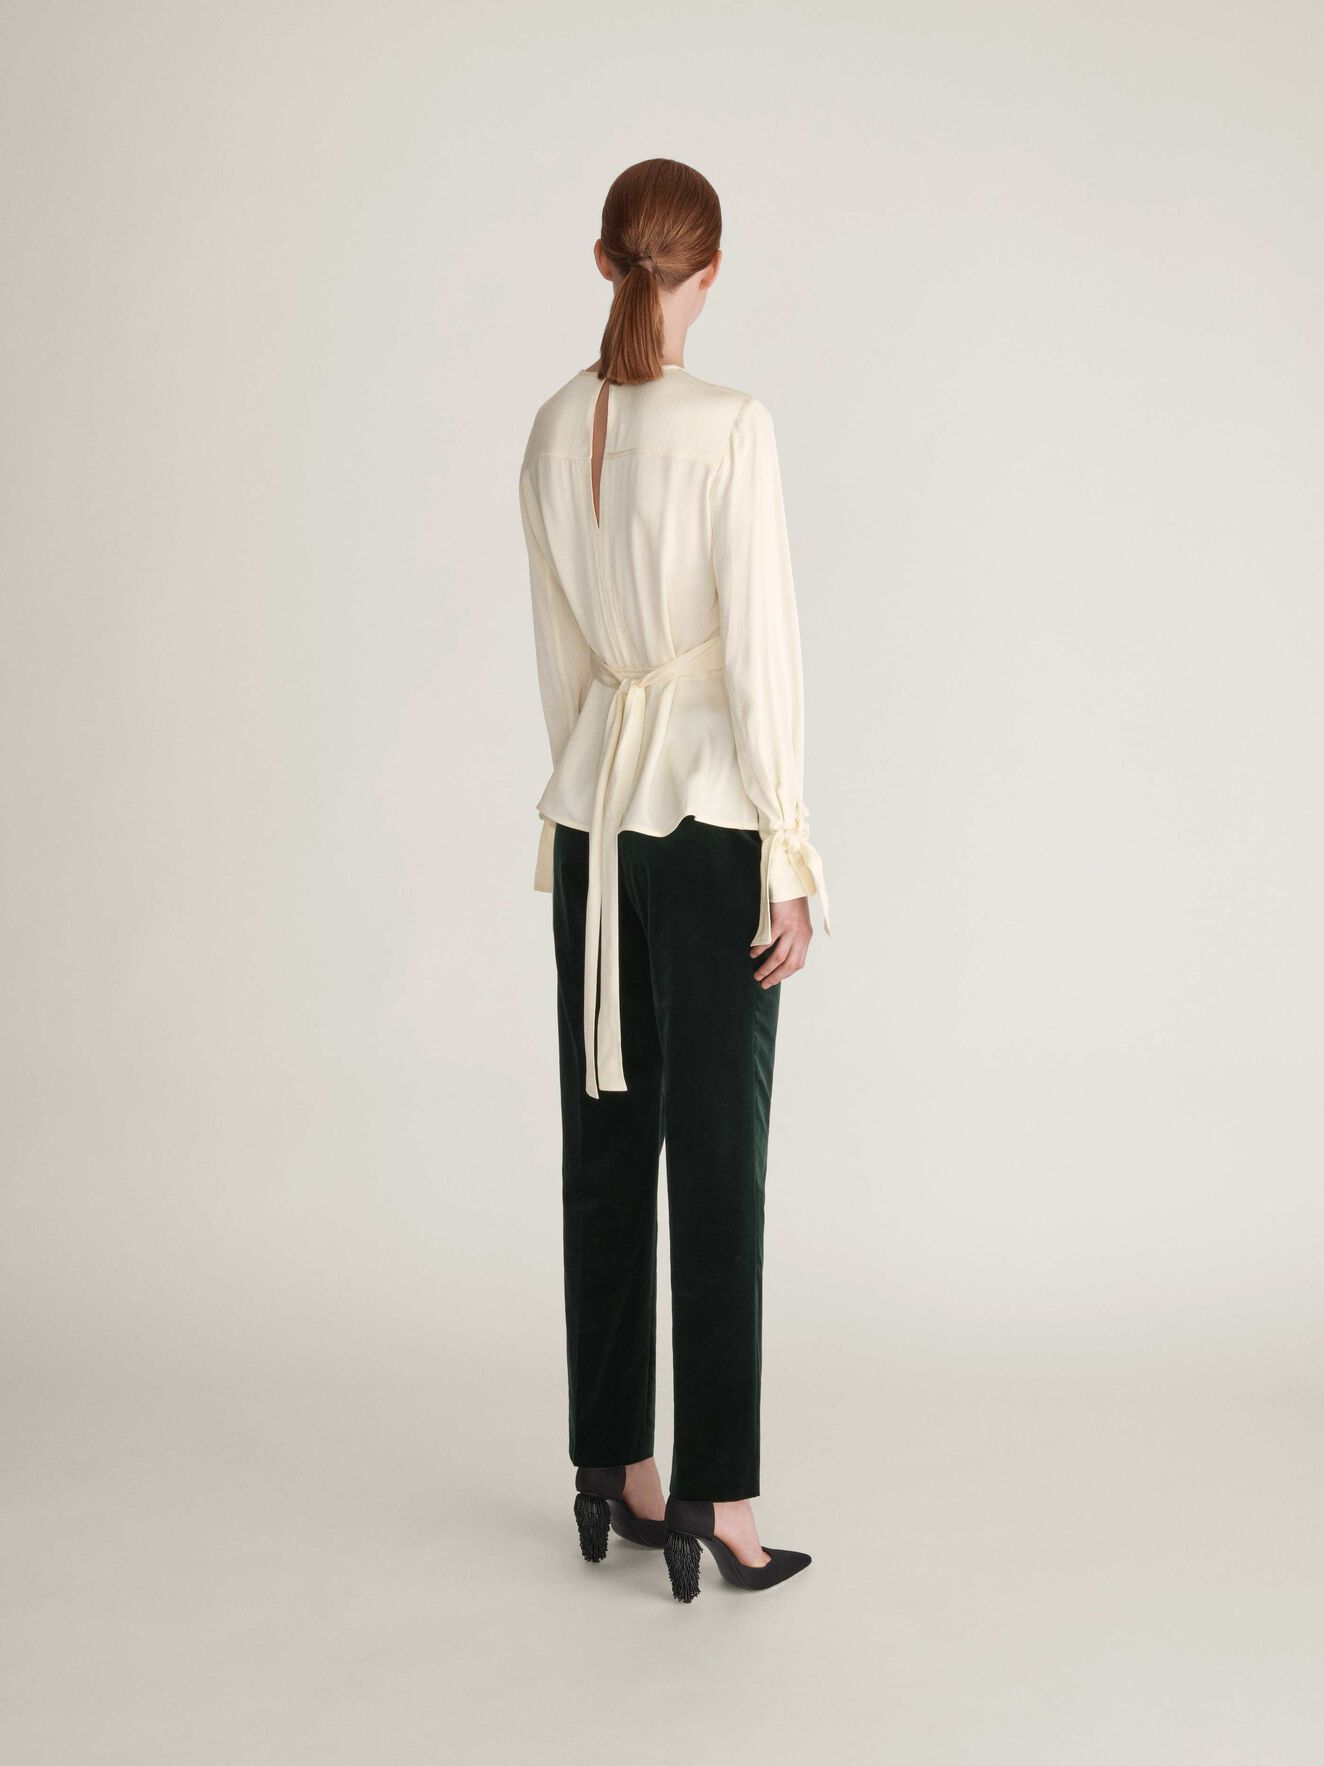 Simmone Top in Divine White from Tiger of Sweden